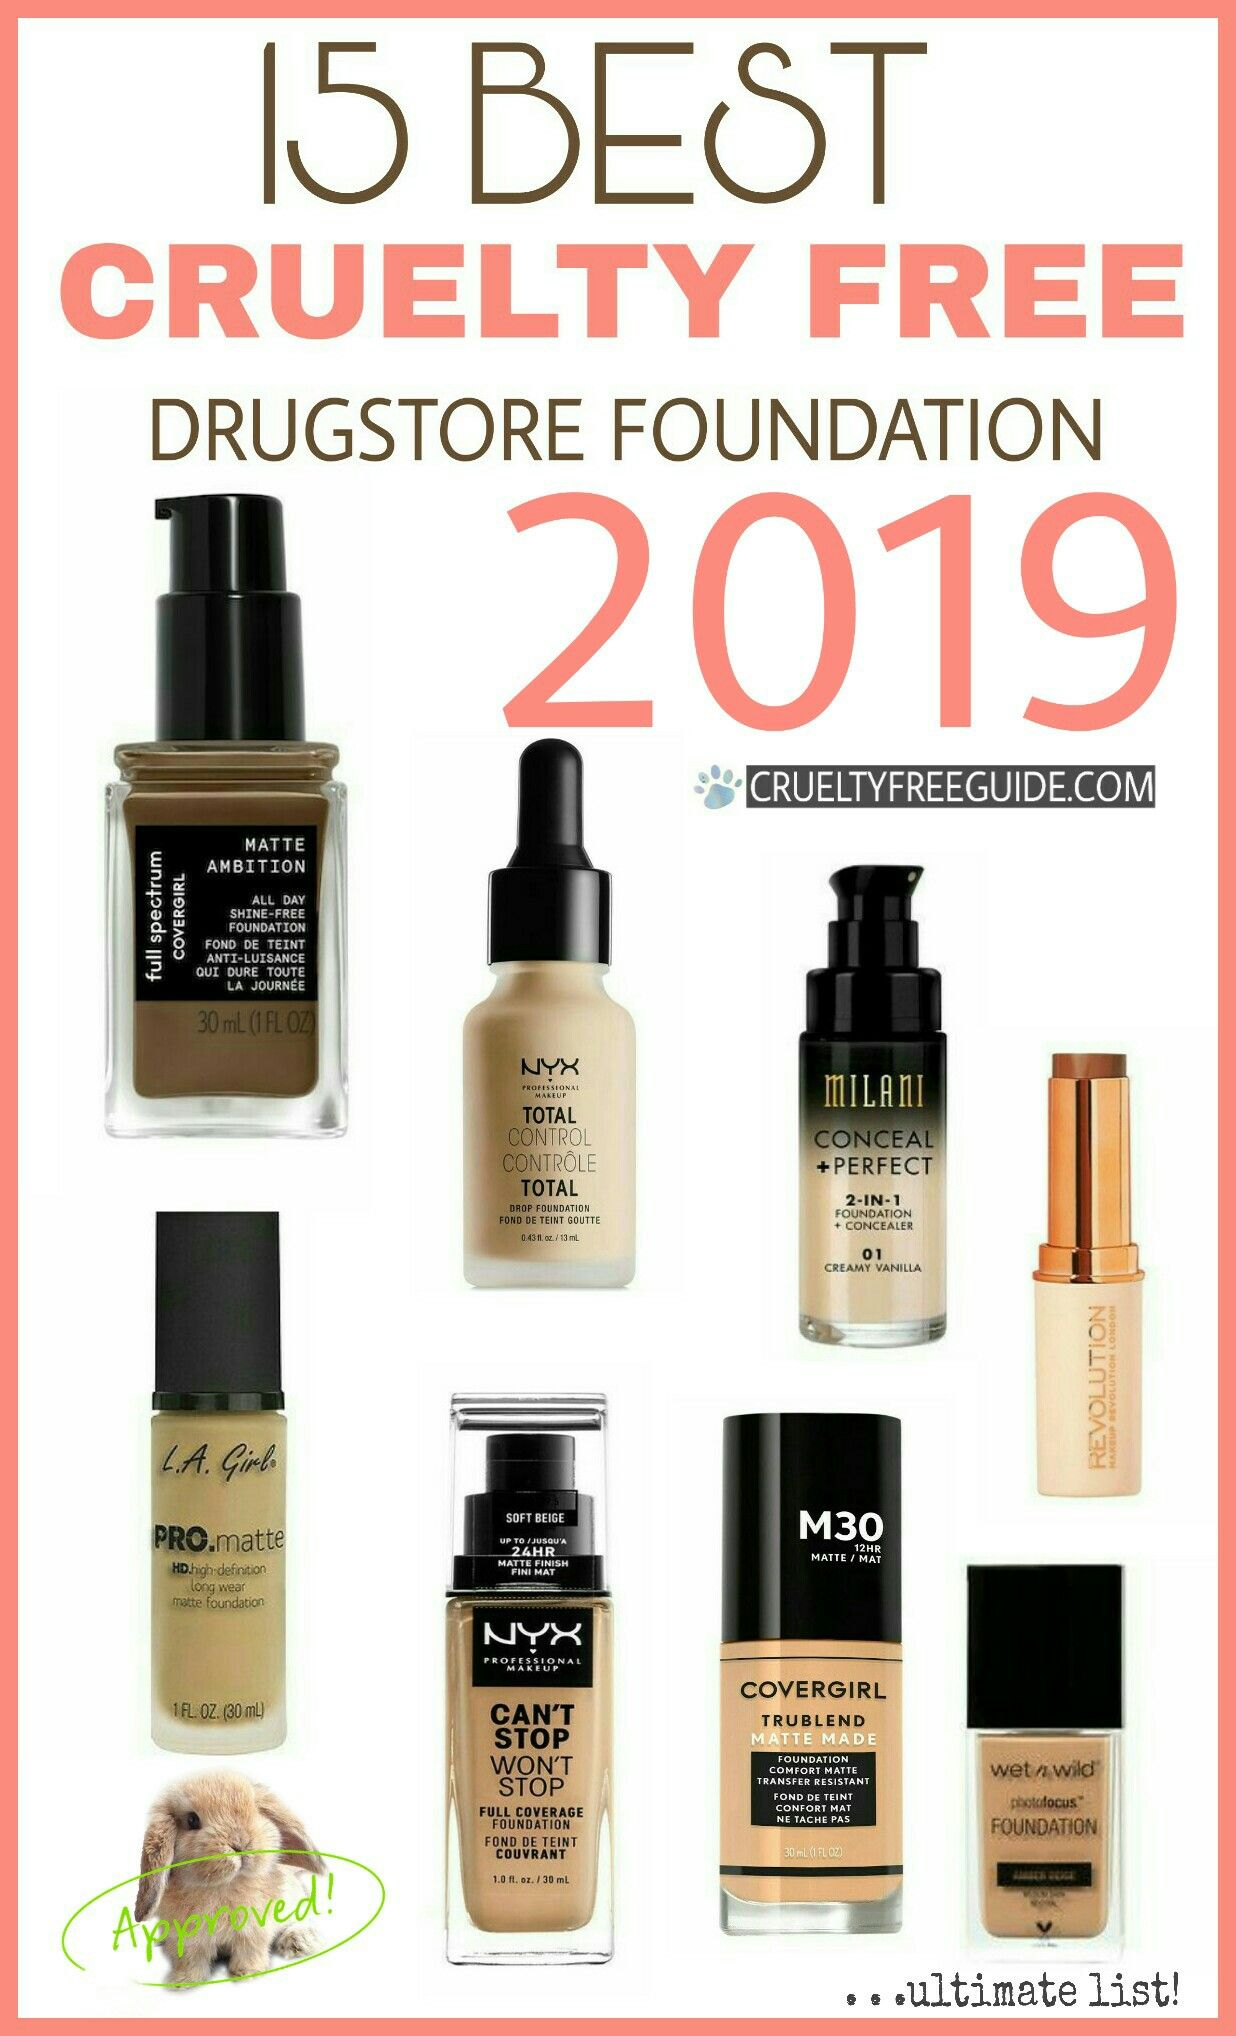 Best Foundation 2019 15 Amazing Drugstore Foundations That Are Cruelty Free *2019